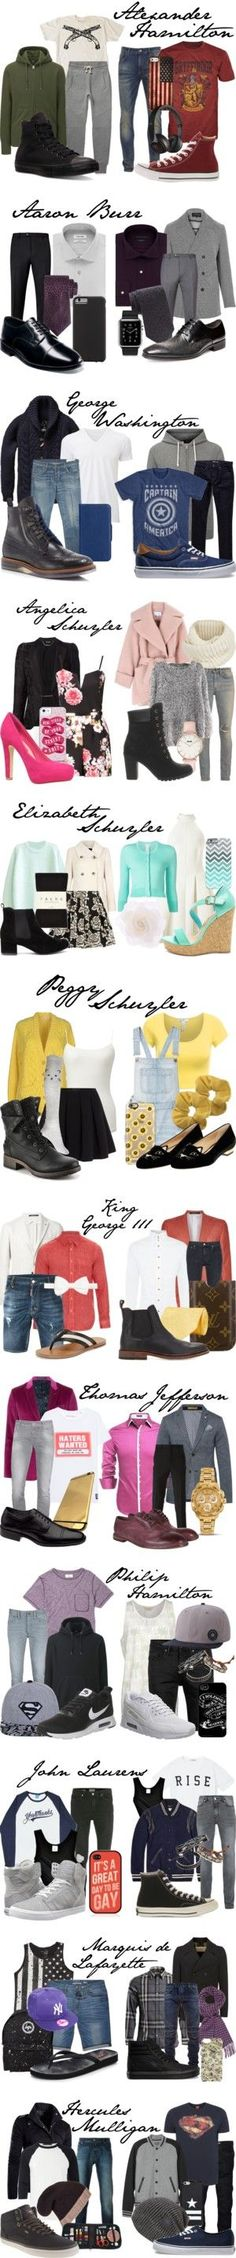 Hamilton High School AU by evie-geebee on Polyvore featuring Uniqlo, John Elliott, Scotch & Soda, Retrò, Converse, Beats by Dr. Dre, men's fashion, menswear, broadway and Hamilton Women, Men and Kids Outfit Ideas on our website at 7ootd.com #ootd #7ootd